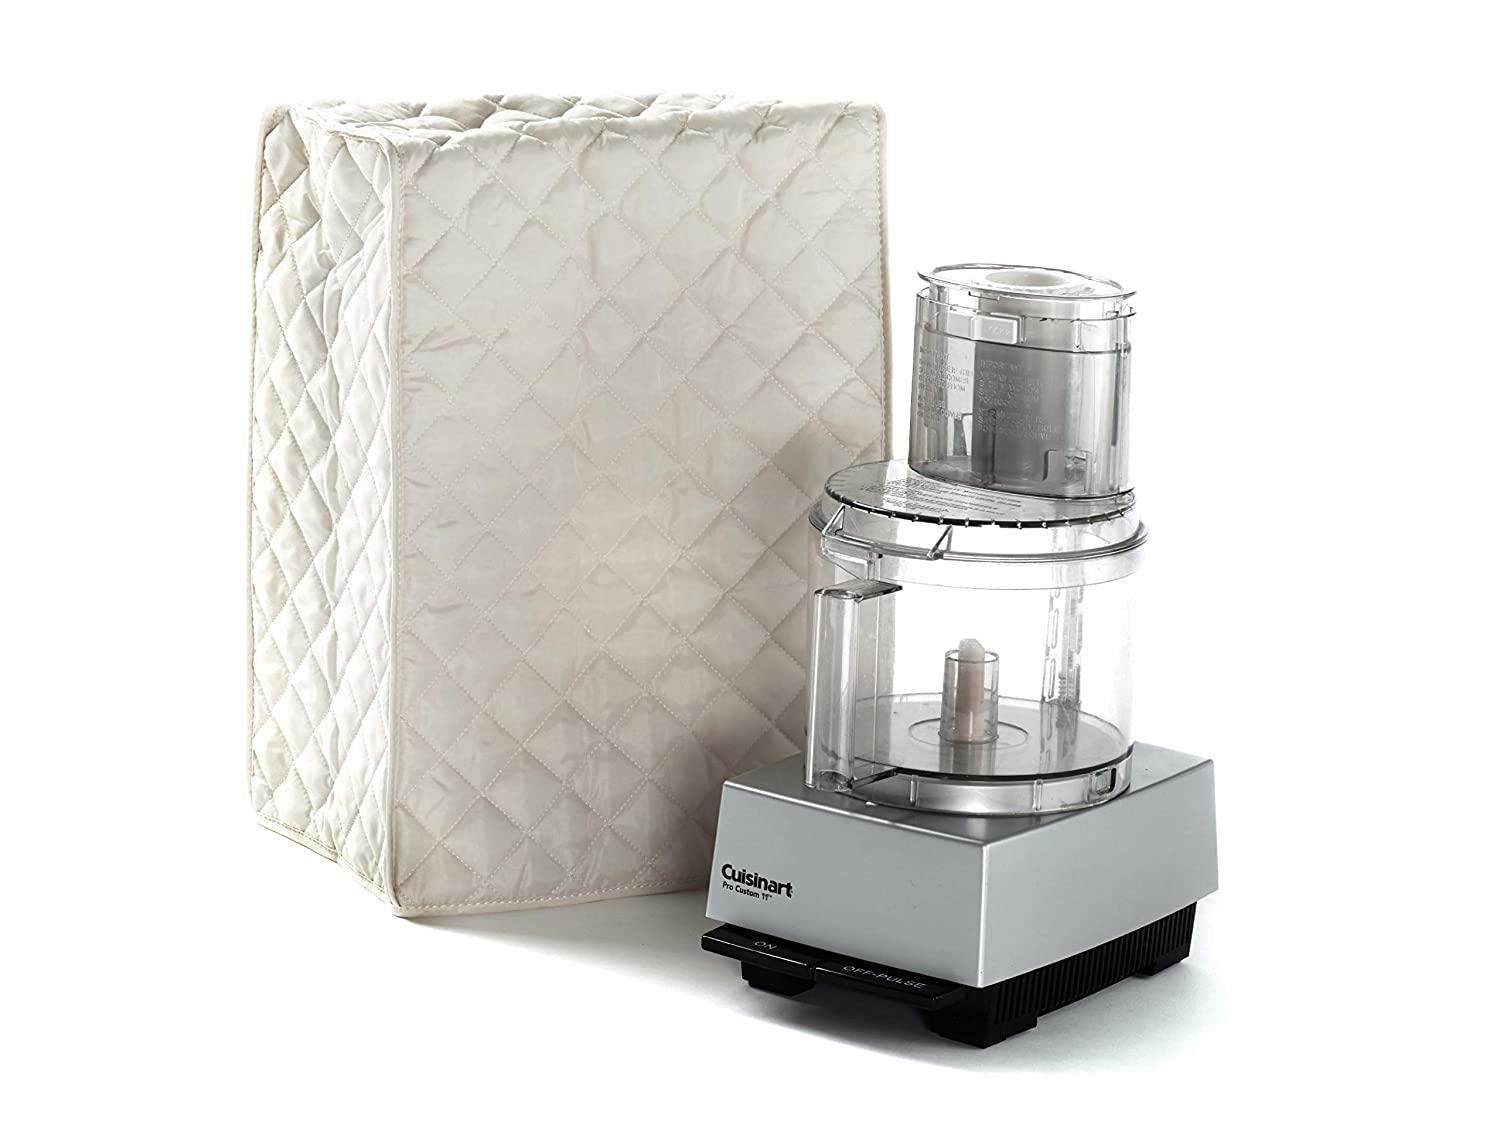 Covermates Food Processor Cover 12W x 8D x 17H Diamond Collection 2 YR Warranty Year Around Protection – Cream